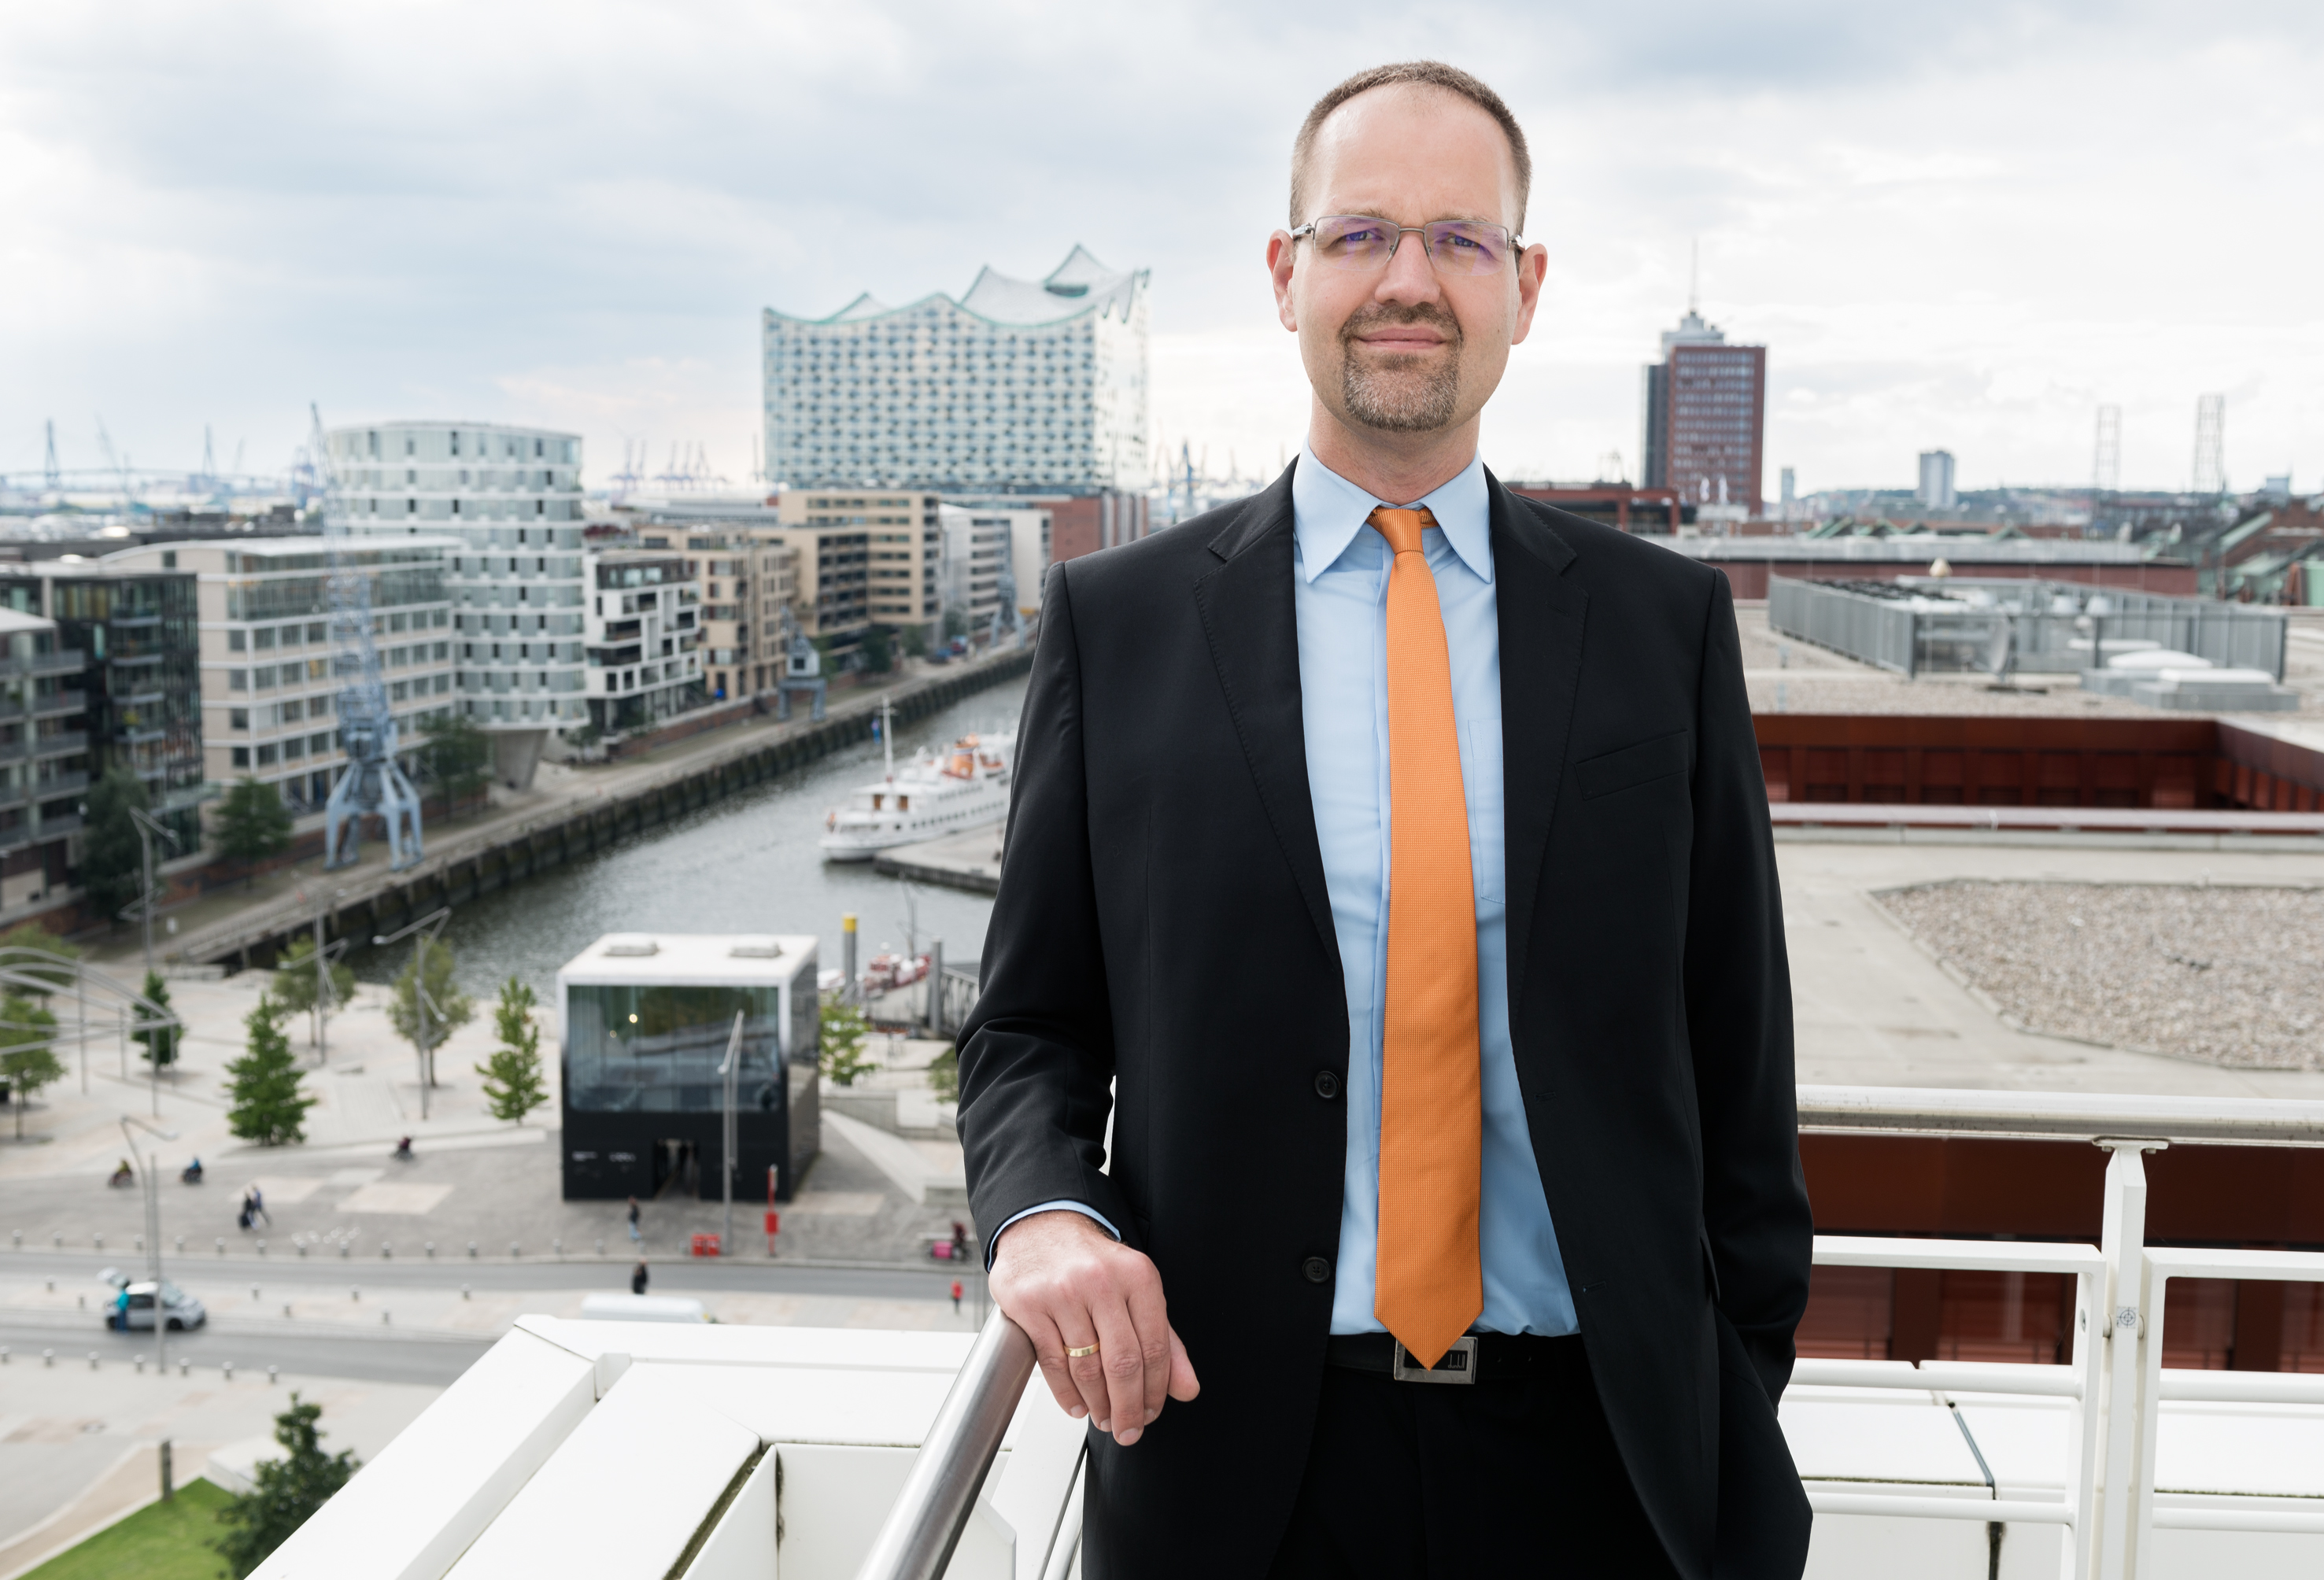 Marco Neelsen to succeed Heinrich Ahlers at Buss Logistics